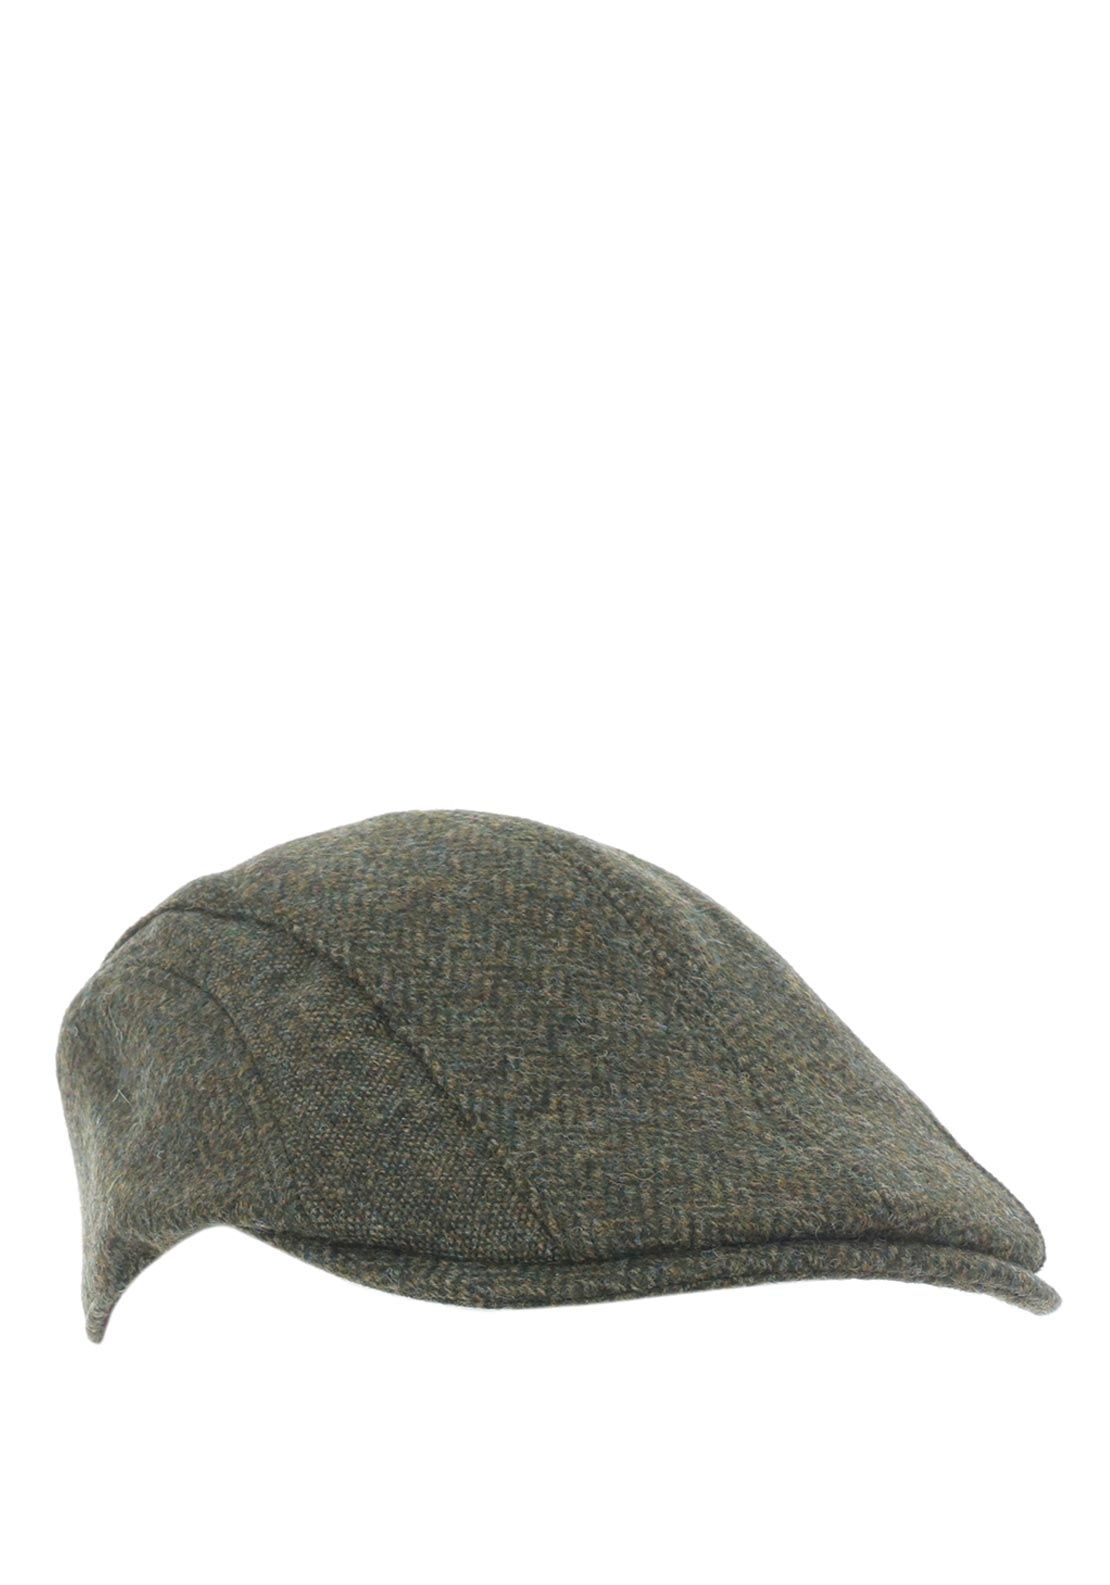 Barbour Men's Herringbone Tweed Cap, Green